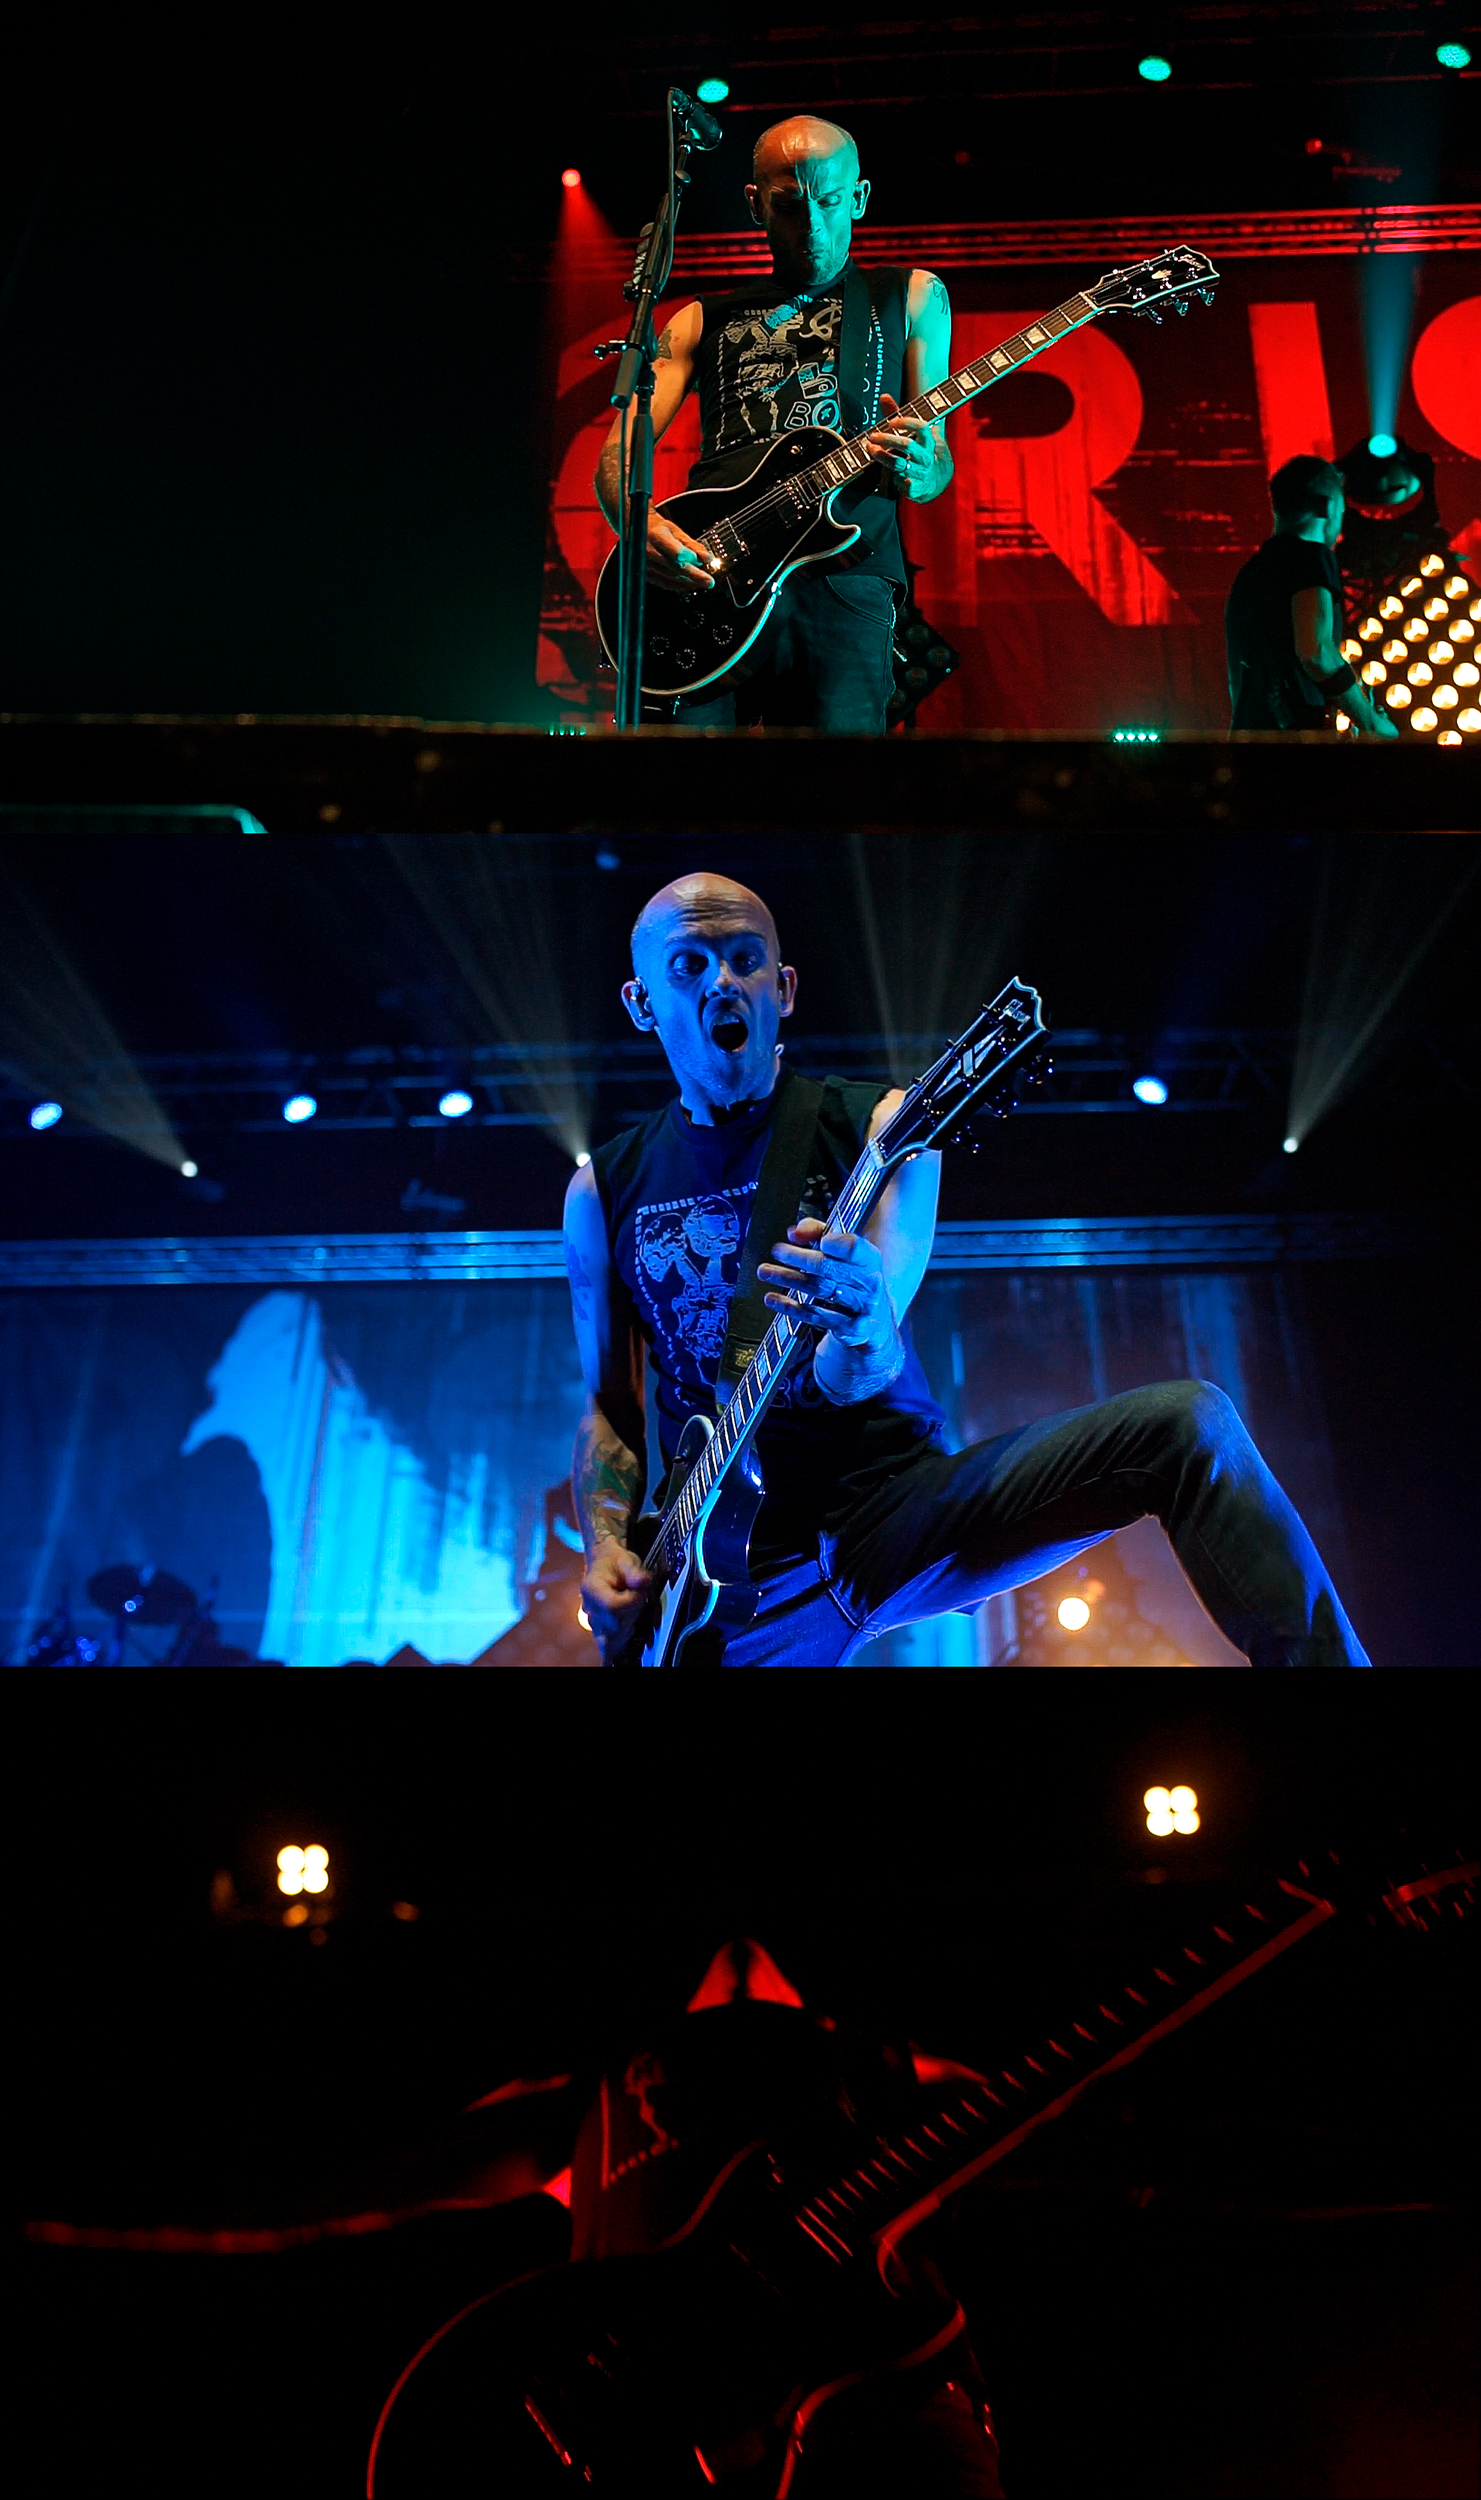 Rise Against - Screenshots / Still frames from Promo Vid.